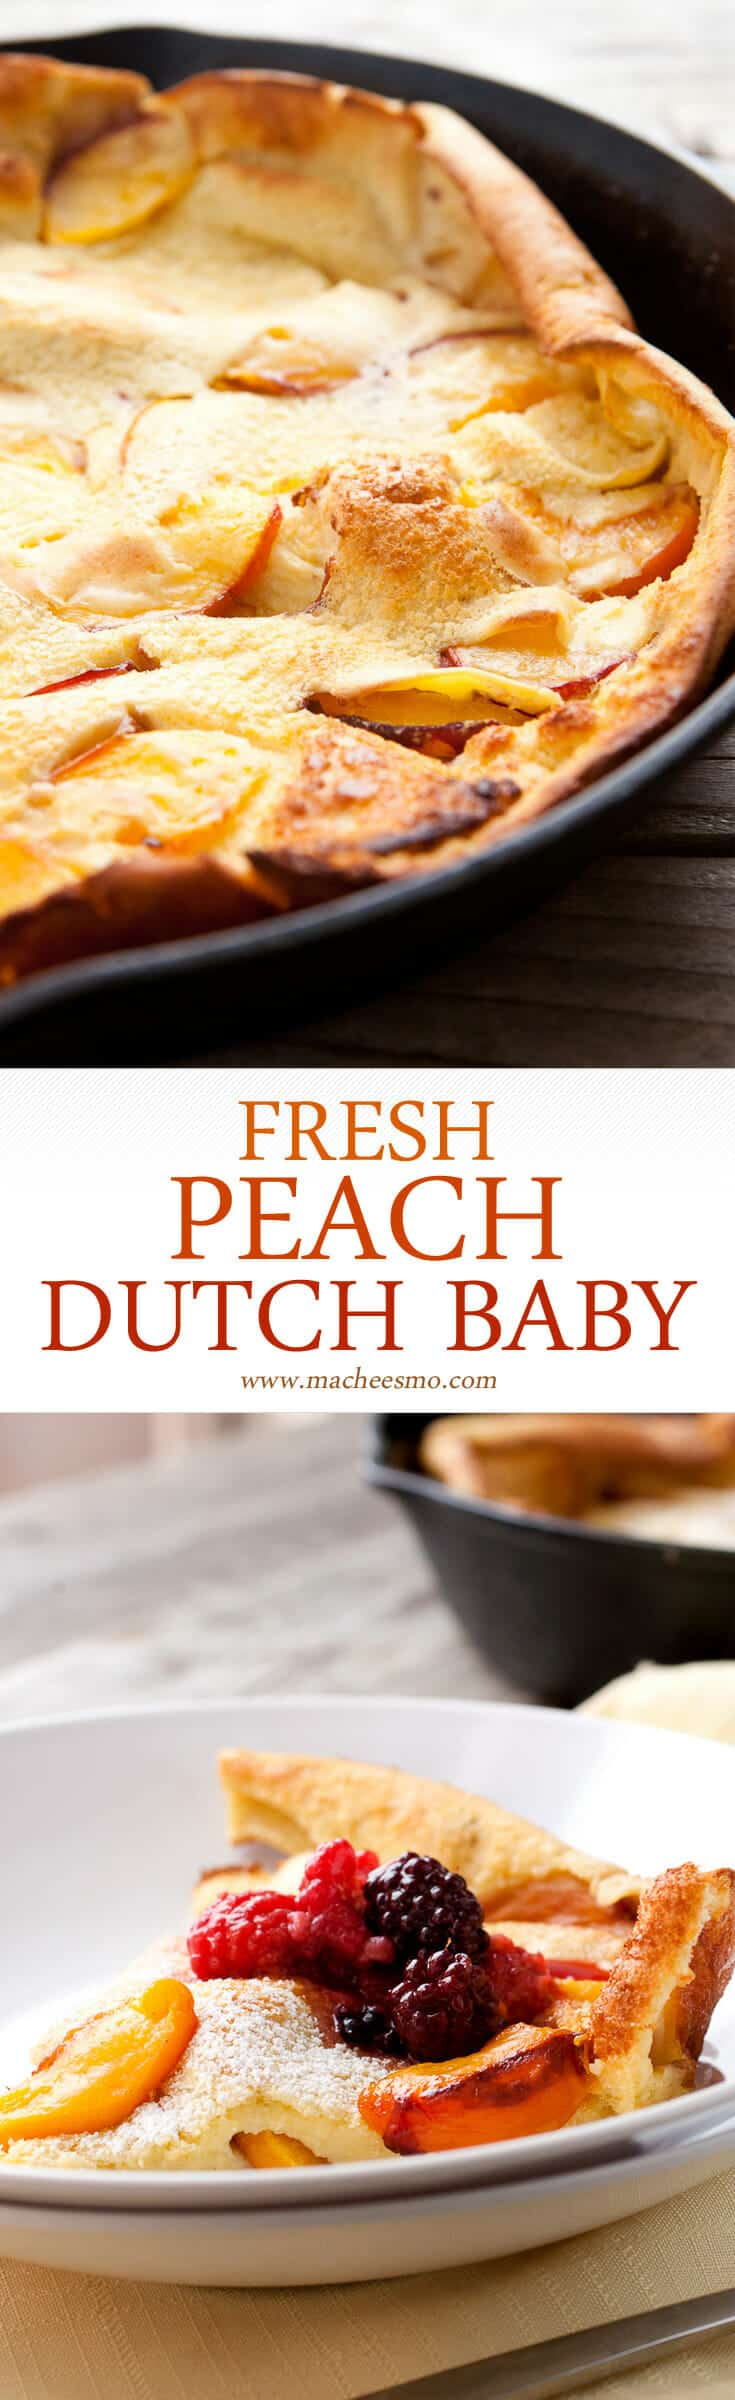 Fresh Peach Dutch Baby: In-season, perfect peaches cooked with a ...